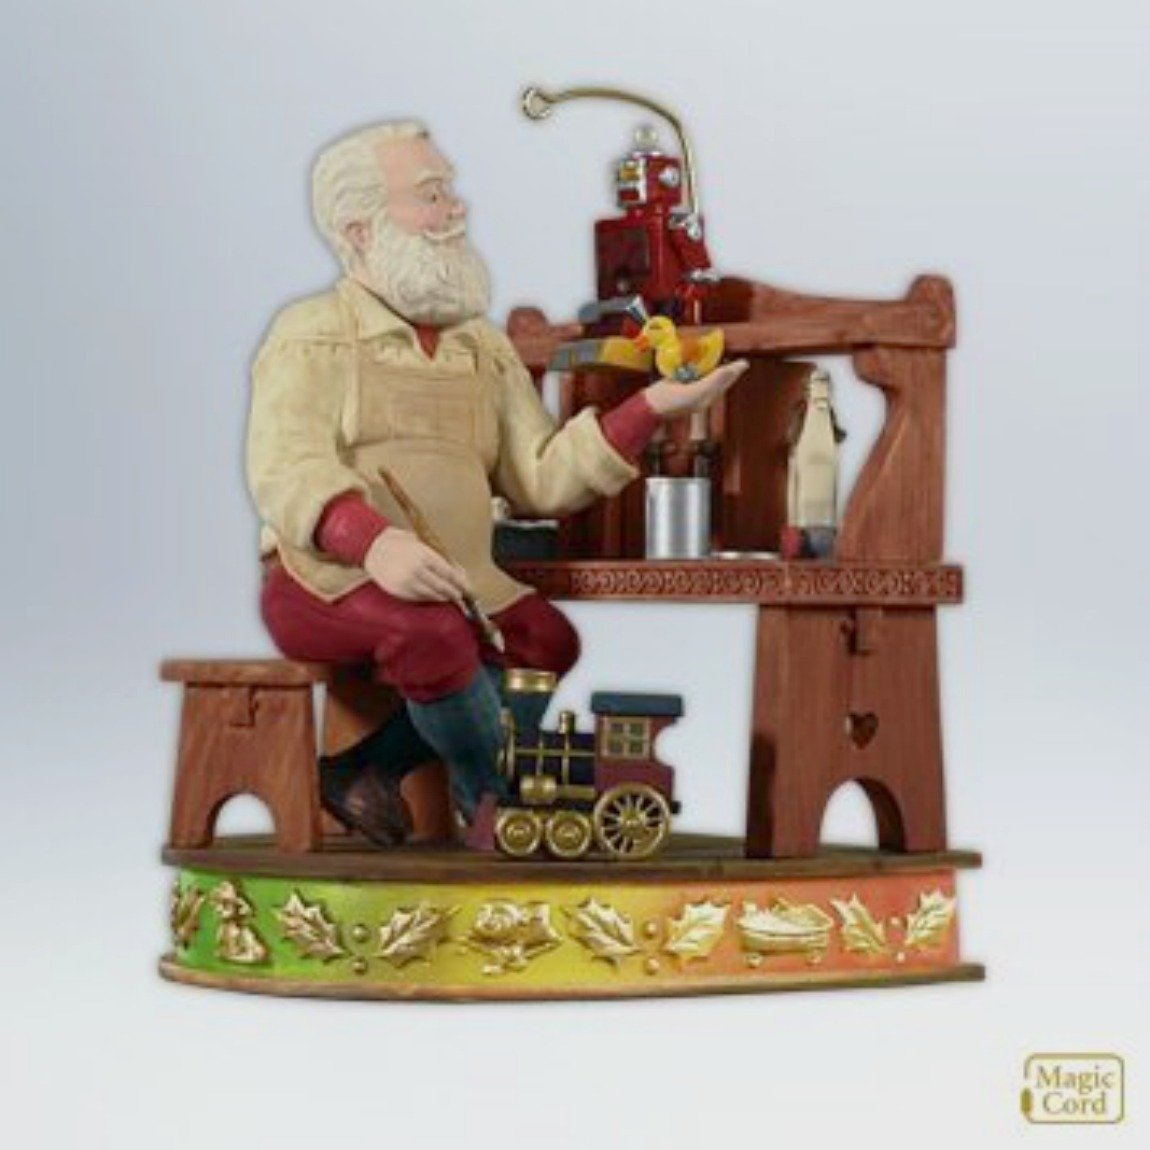 Amazon.com: QX8174 Time for Toys Once Upon A Christmas 2012 ...